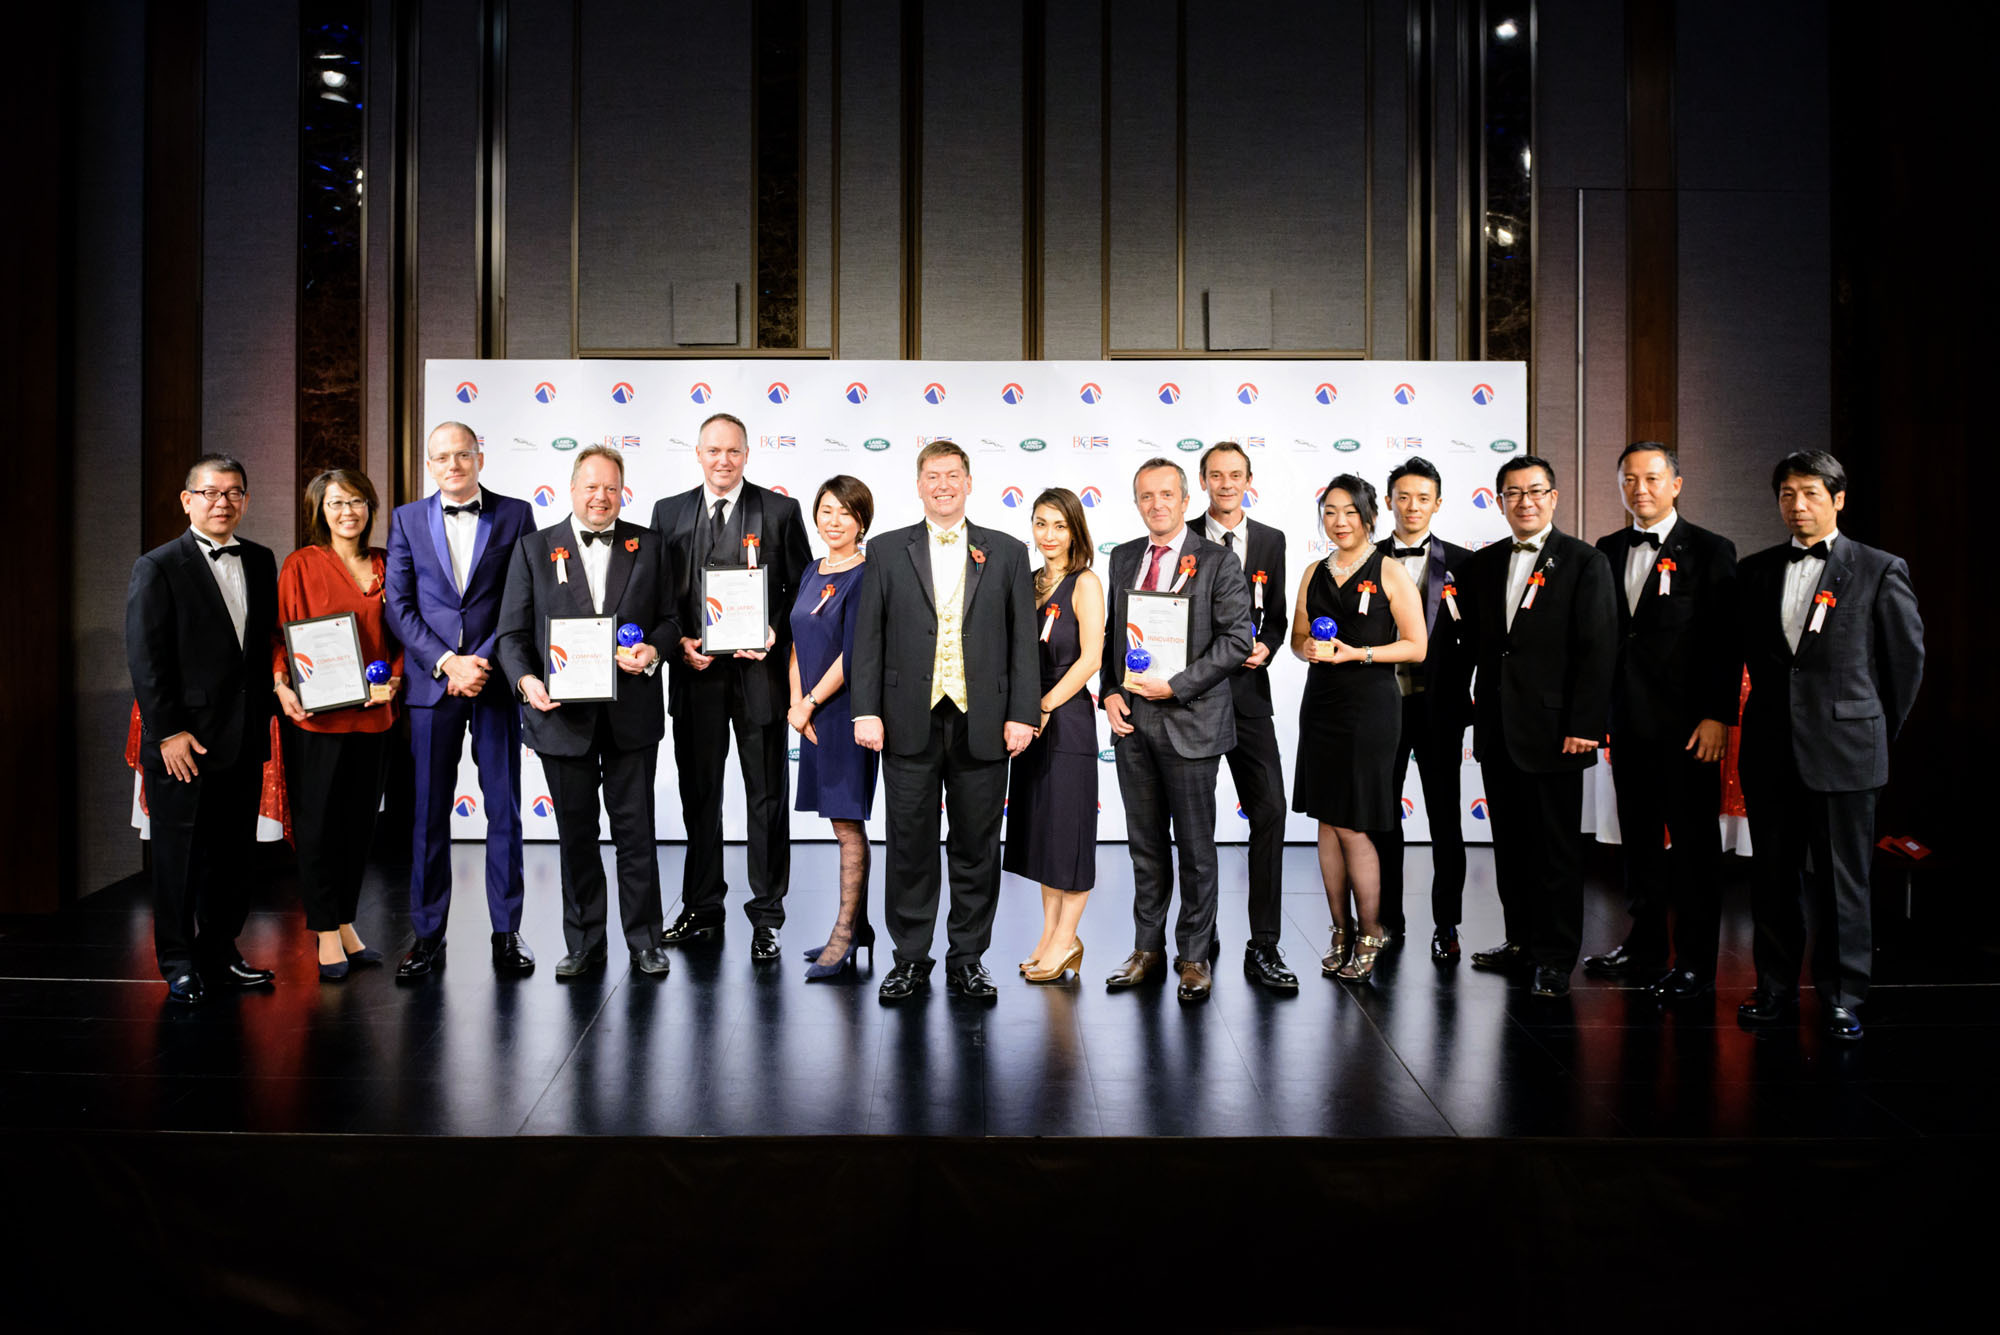 British Ambassador to Japan Paul Madden (center) poses with winners of the 2017 British Business Awards at Grand Hyatt Tokyo on Nov. 2. |   COURTESY OF ANTONY TRAN